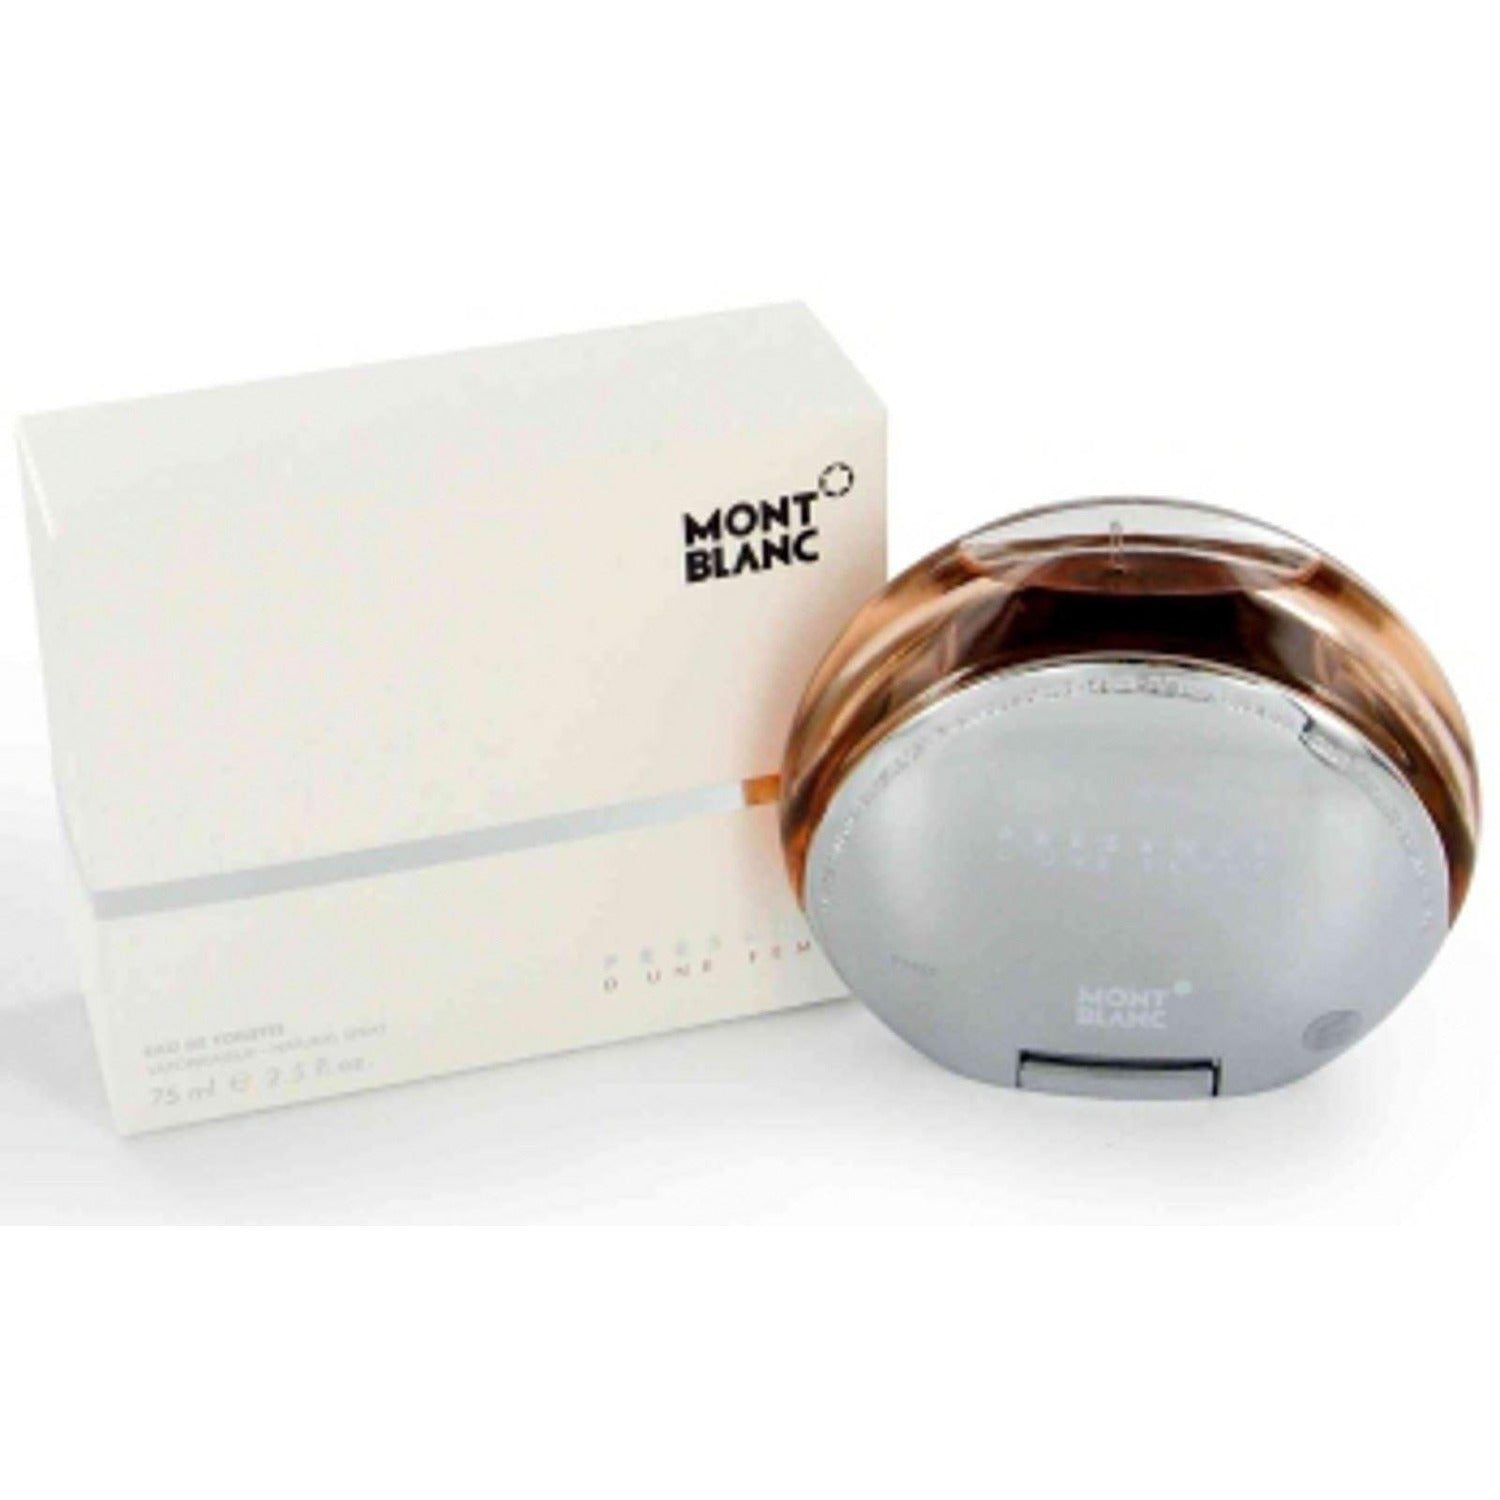 presence-dune-femme-by-mont-blanc-2-5-oz-edt-women-perfume-new-in-box